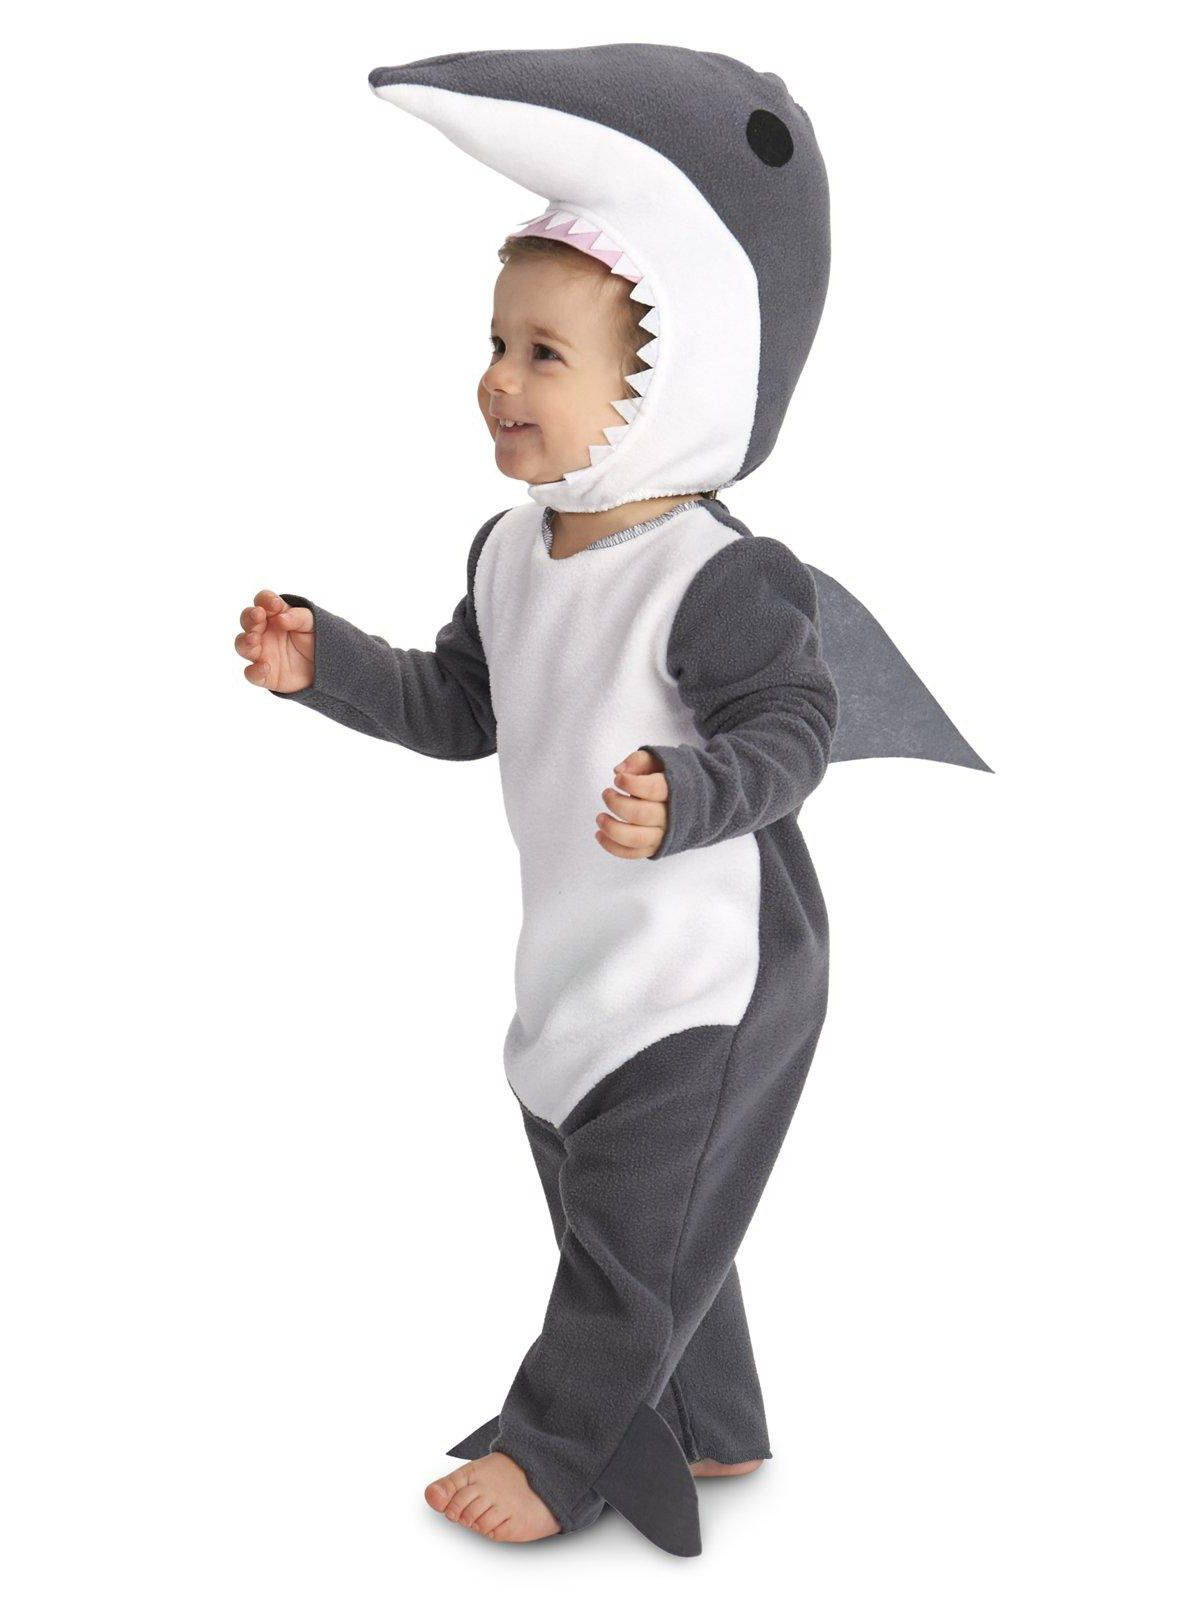 Shark Costume For Babies  sc 1 st  Wholesale Halloween Costumes : baby shark halloween costumes  - Germanpascual.Com